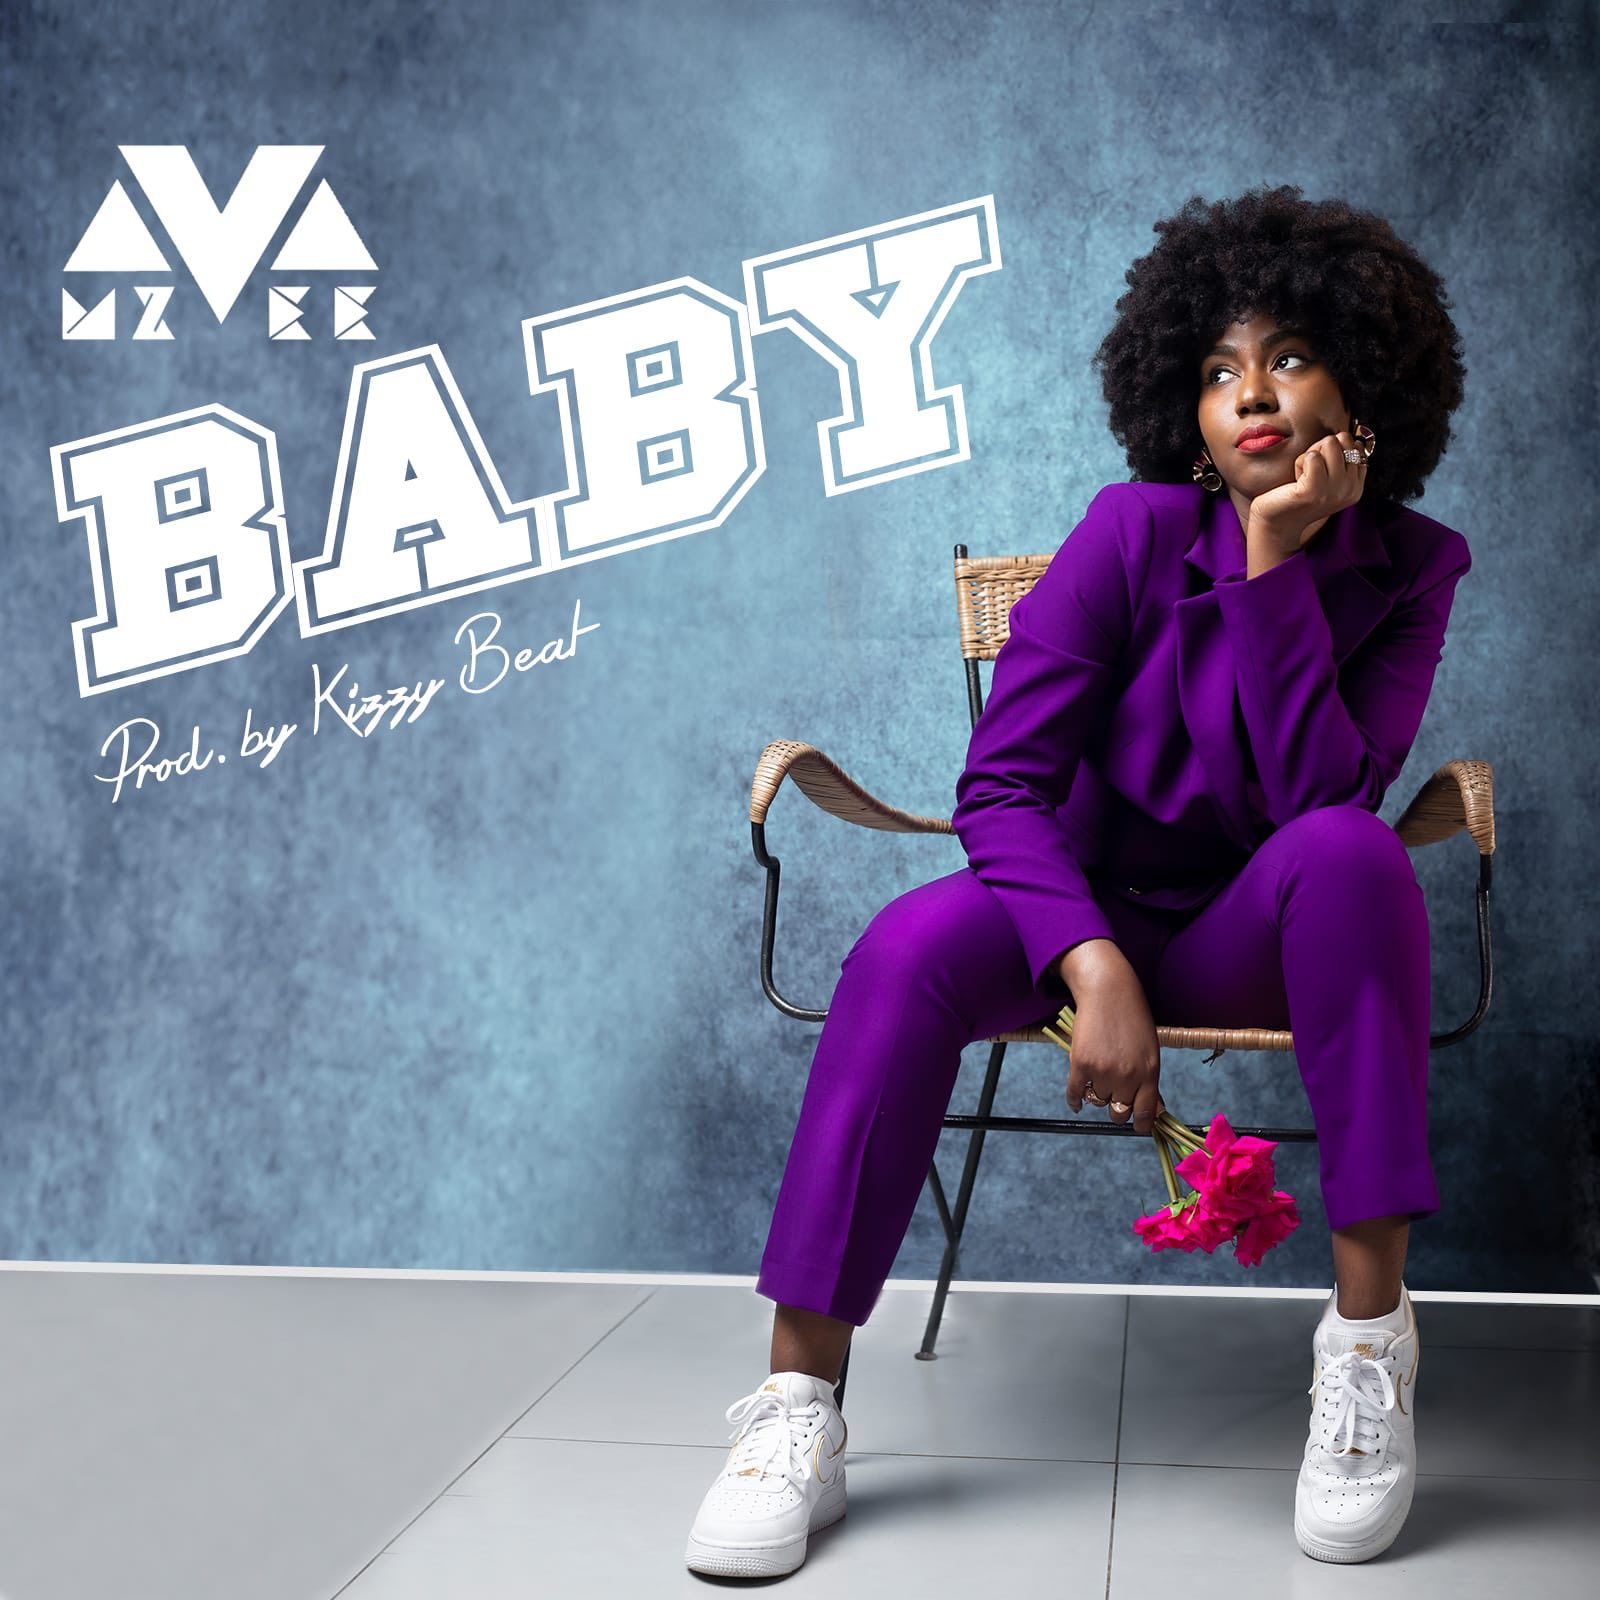 MzVee Announces New Song 'Baby', Tune Drops This Friday